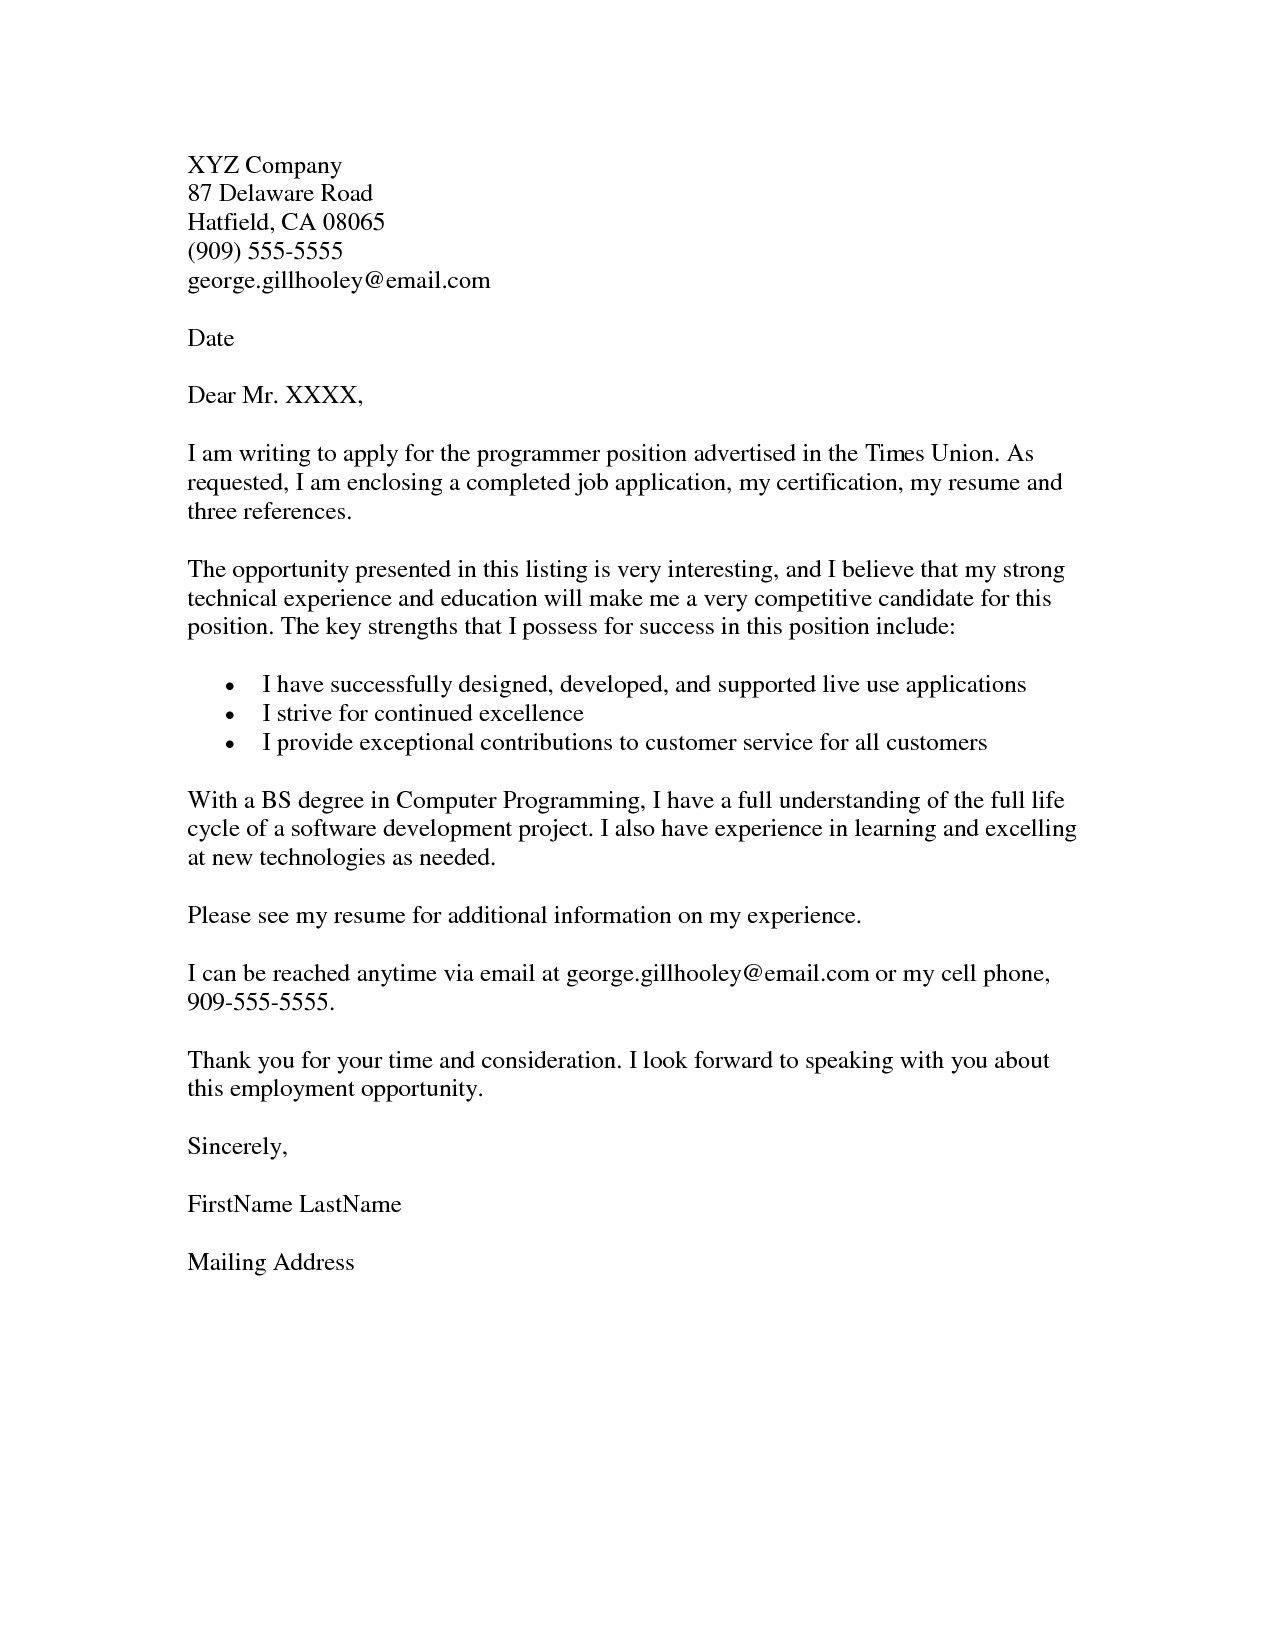 simple cover letter cover letter for job 575334921126162989